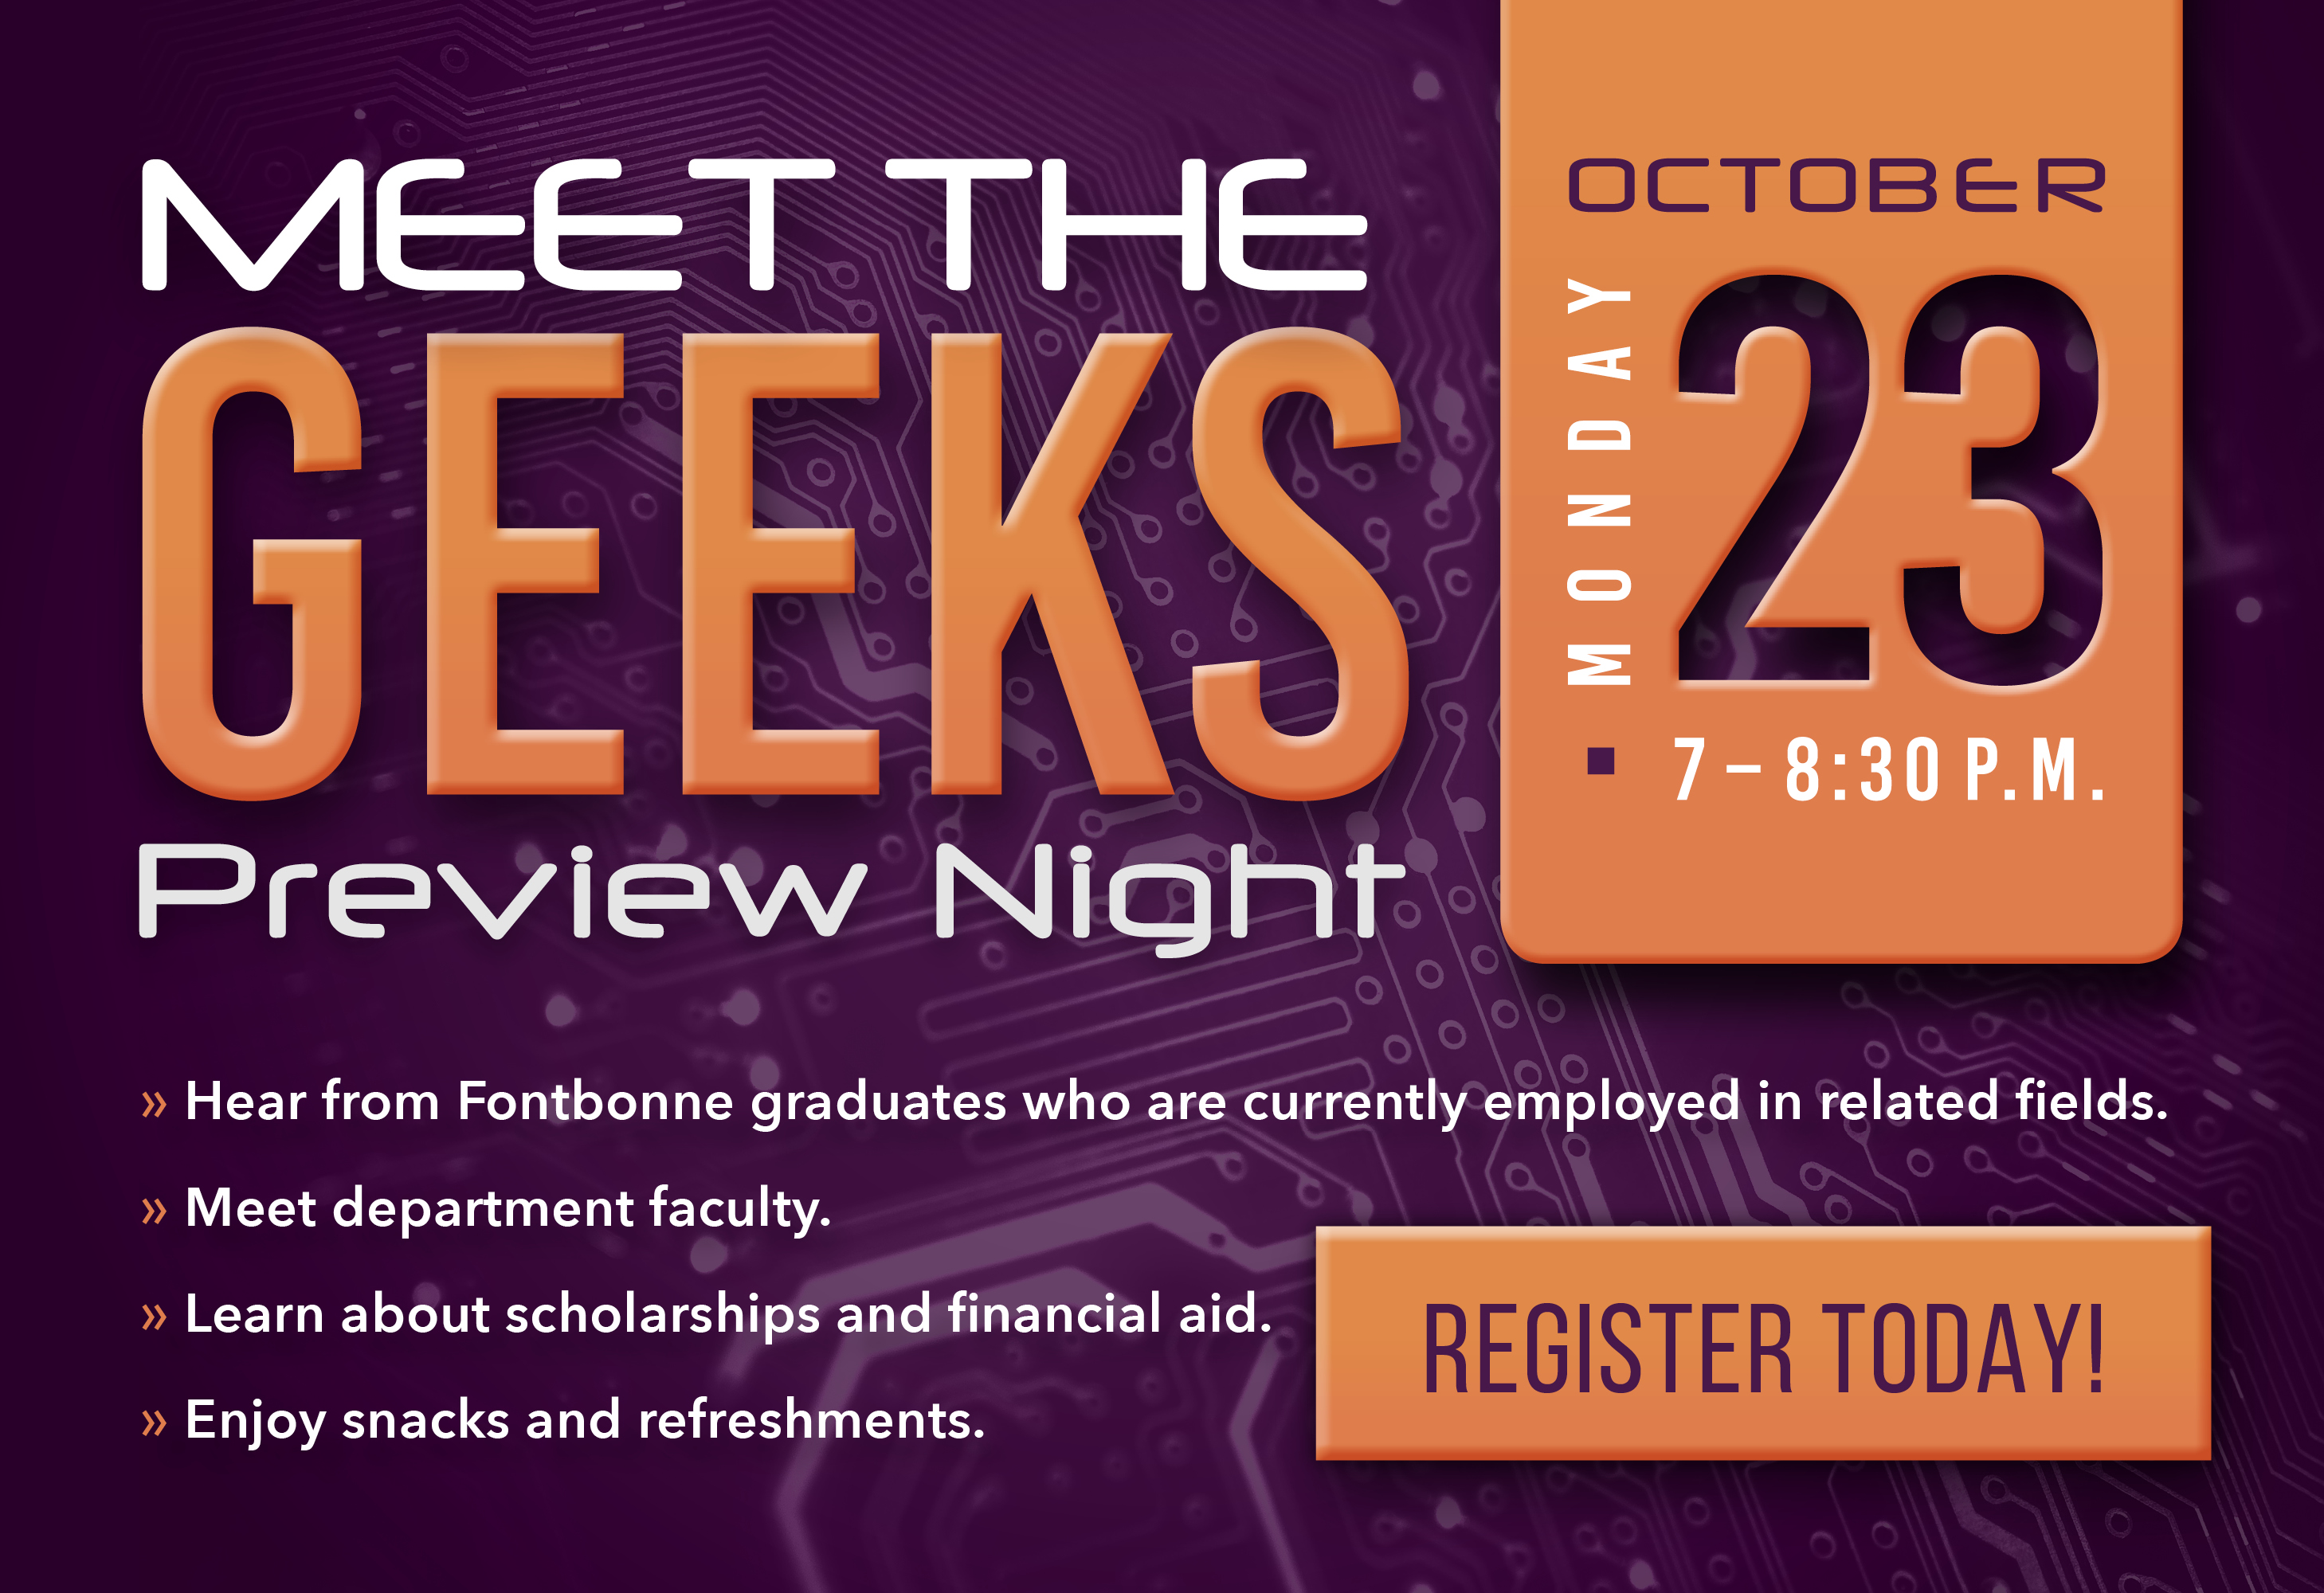 Meet the Geeks on Oct. 23.